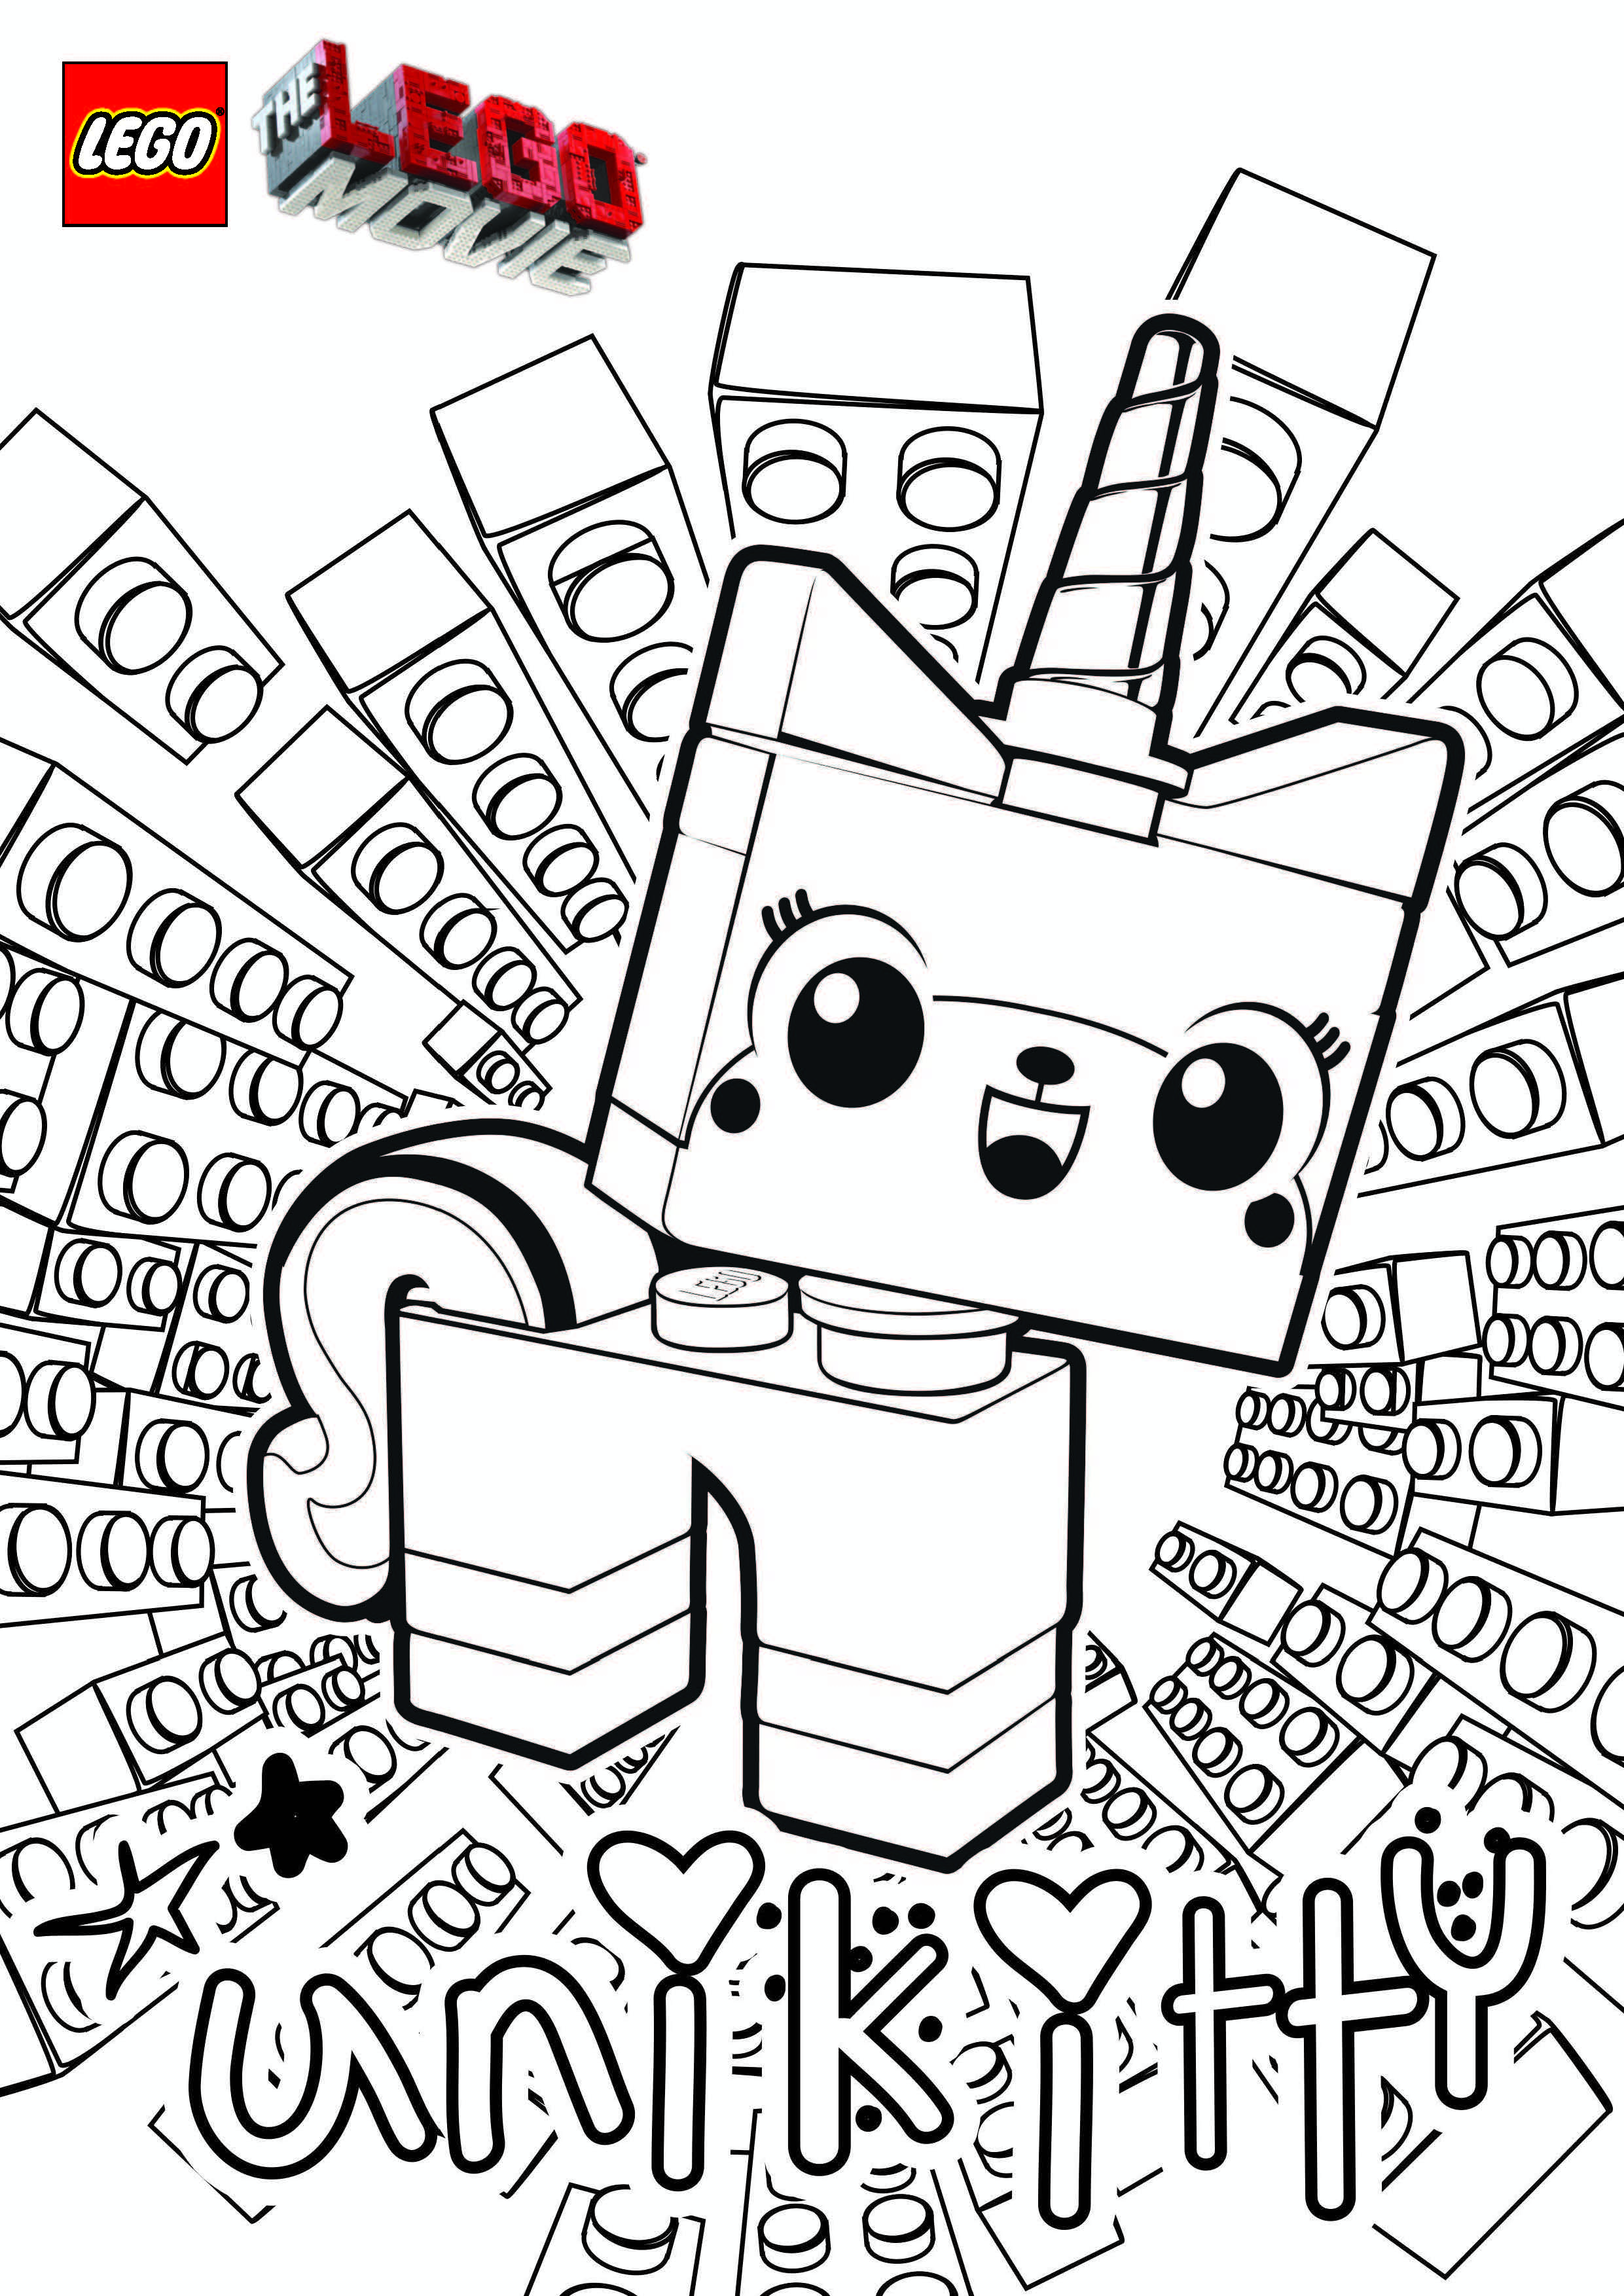 Lego Movie Wyldstyle Coloring Pages Coloring Home Lego Wyldstyle Coloring